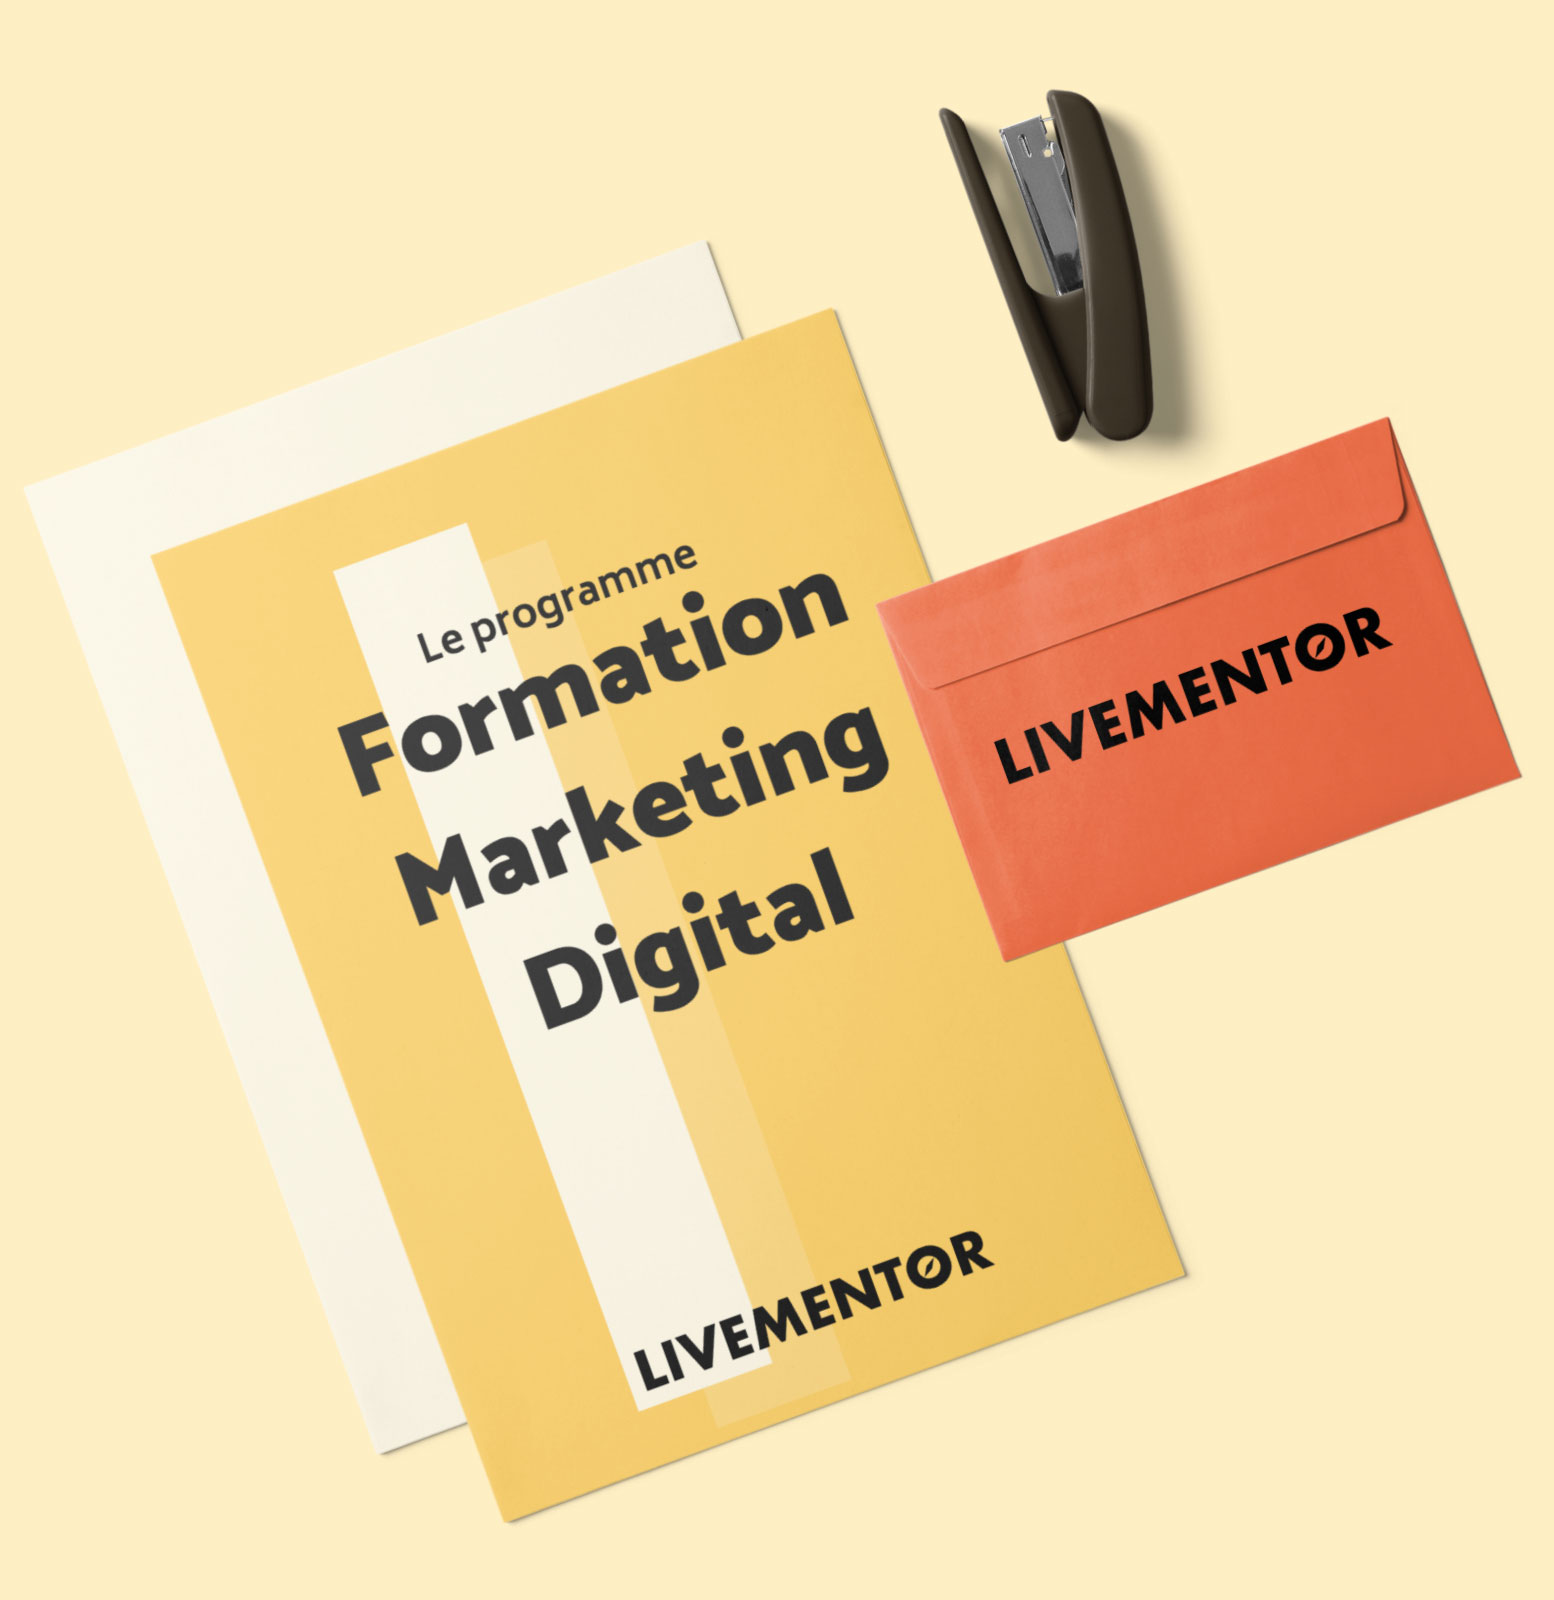 programme formation Marketing digital